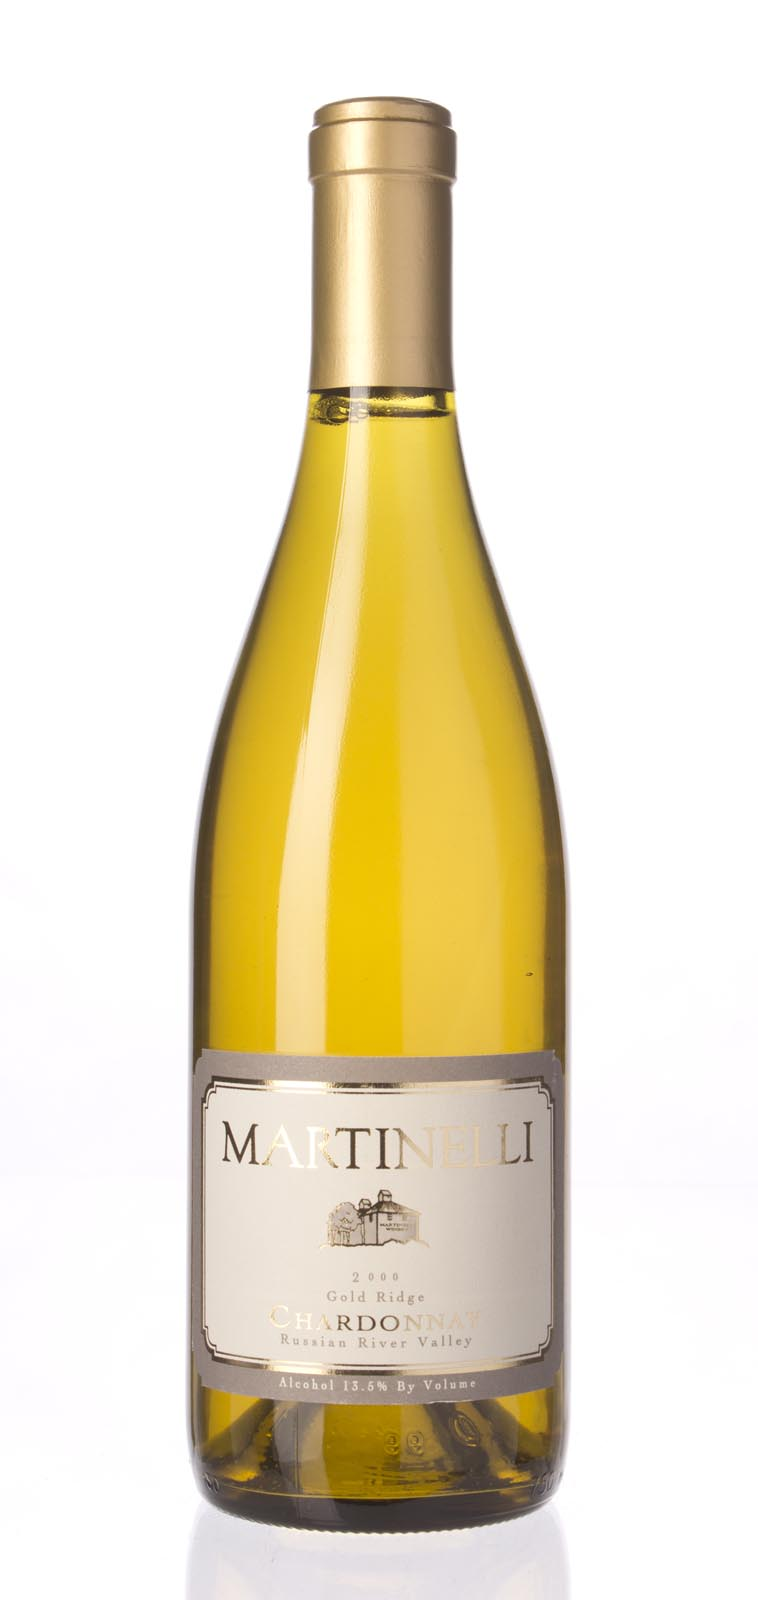 Martinelli Chardonnay Goldridge Vineyard 2000,  (WA90) from The BPW - Merchants of rare and fine wines.